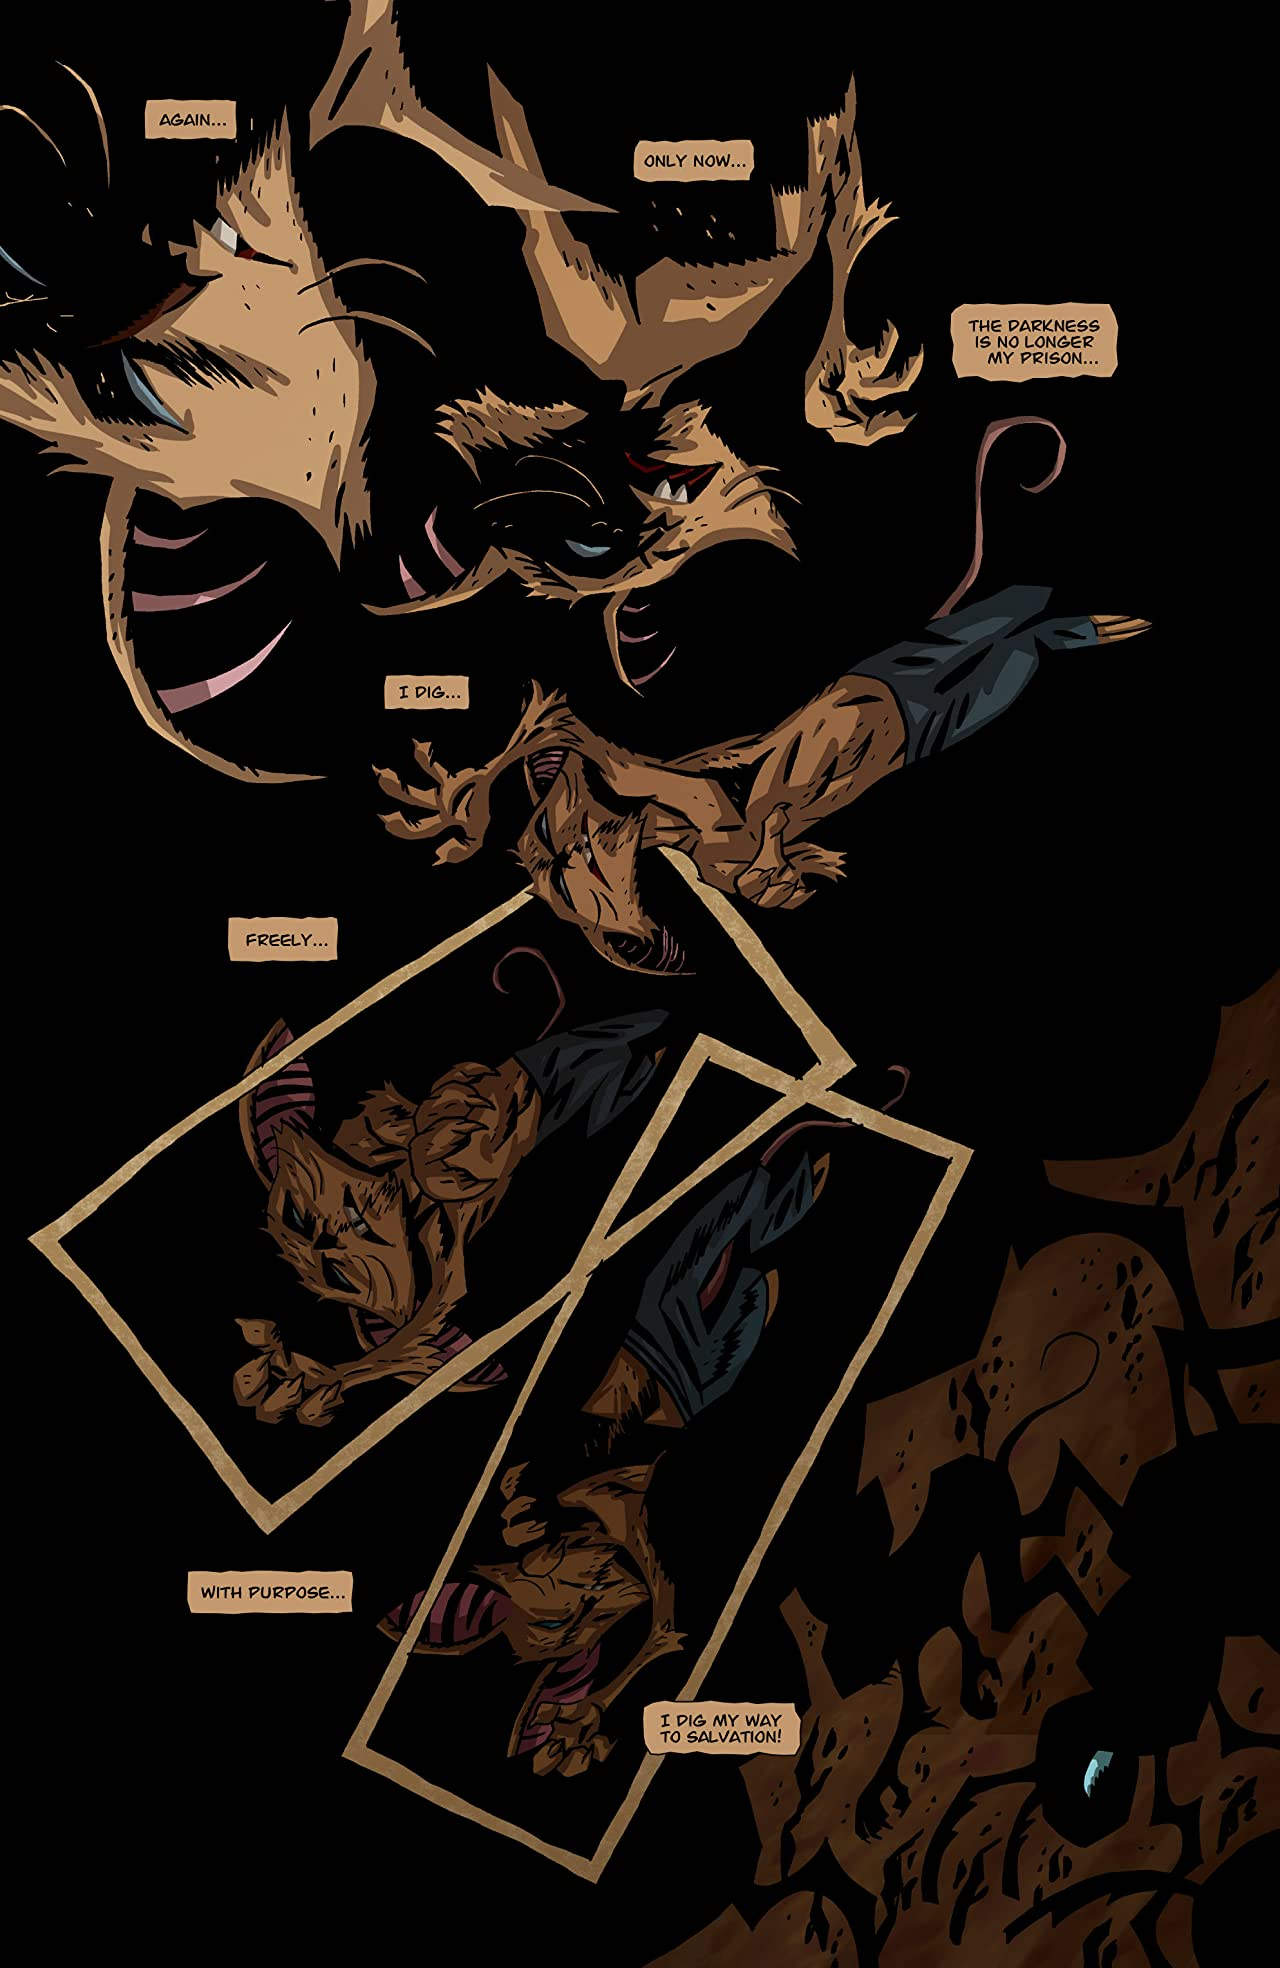 The Mice Templar Vol. 4: Legend #13